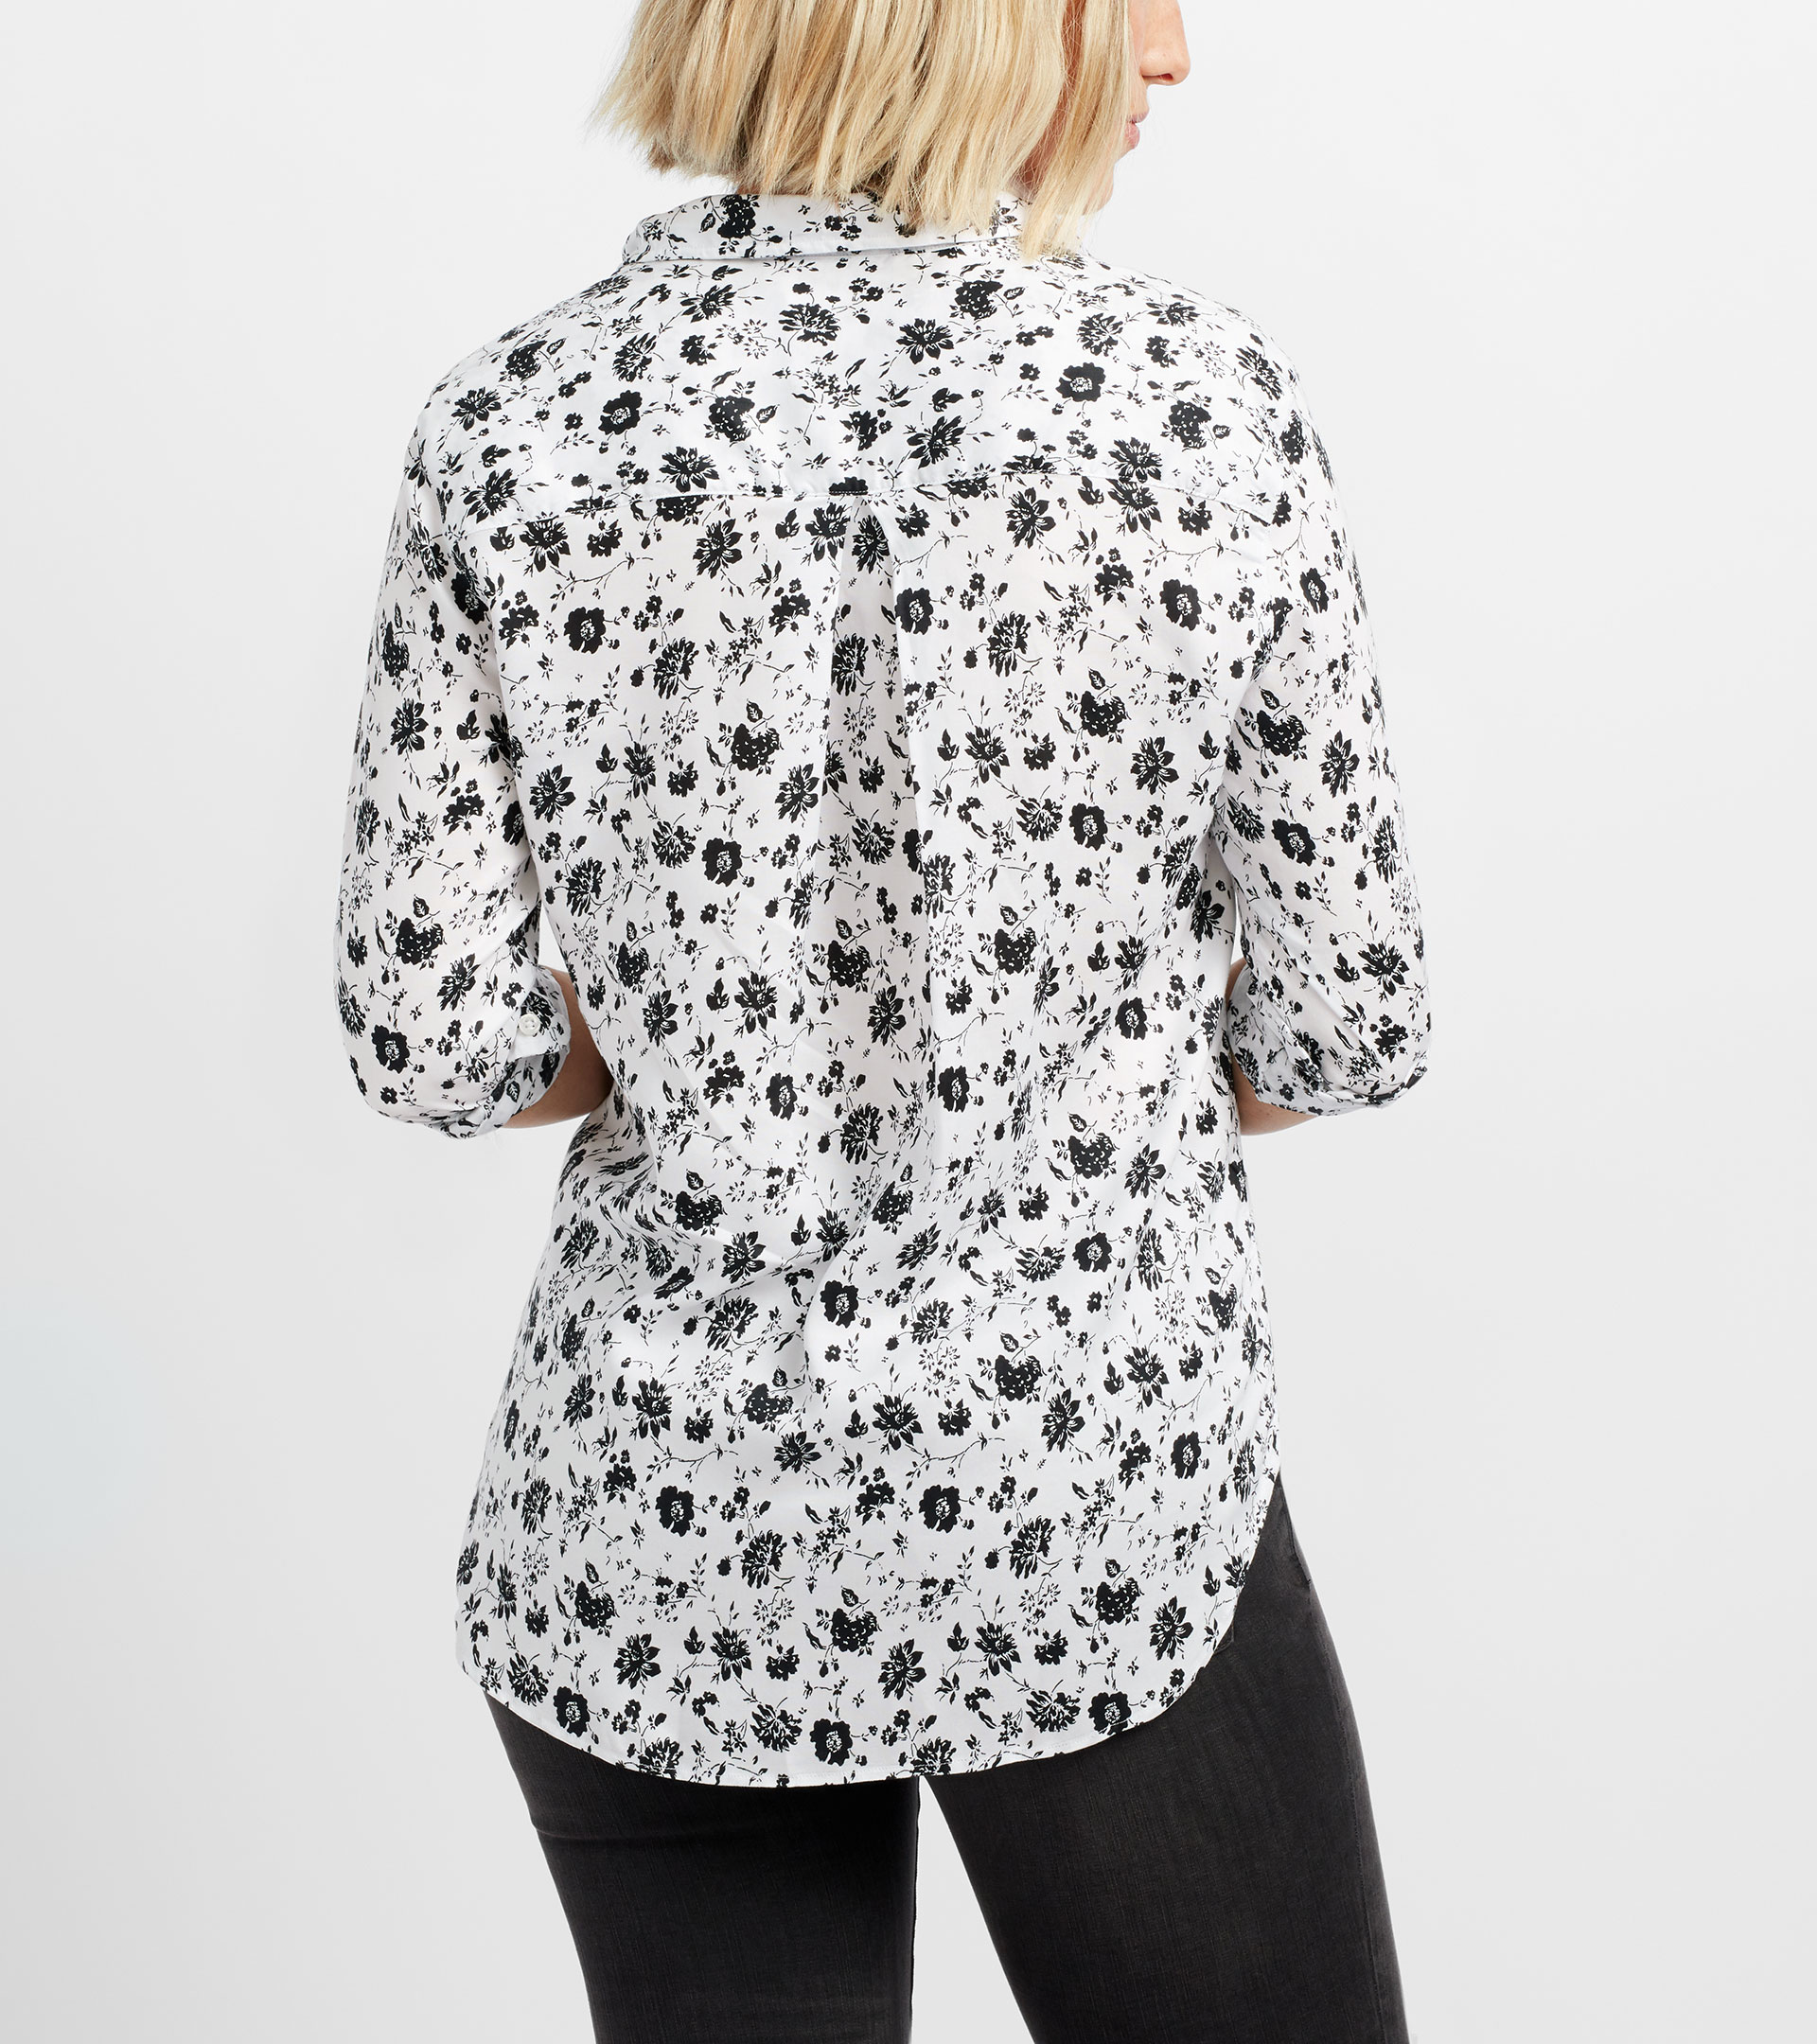 Image of The Hero White with Black Floral, Liquid Lyocell Sale